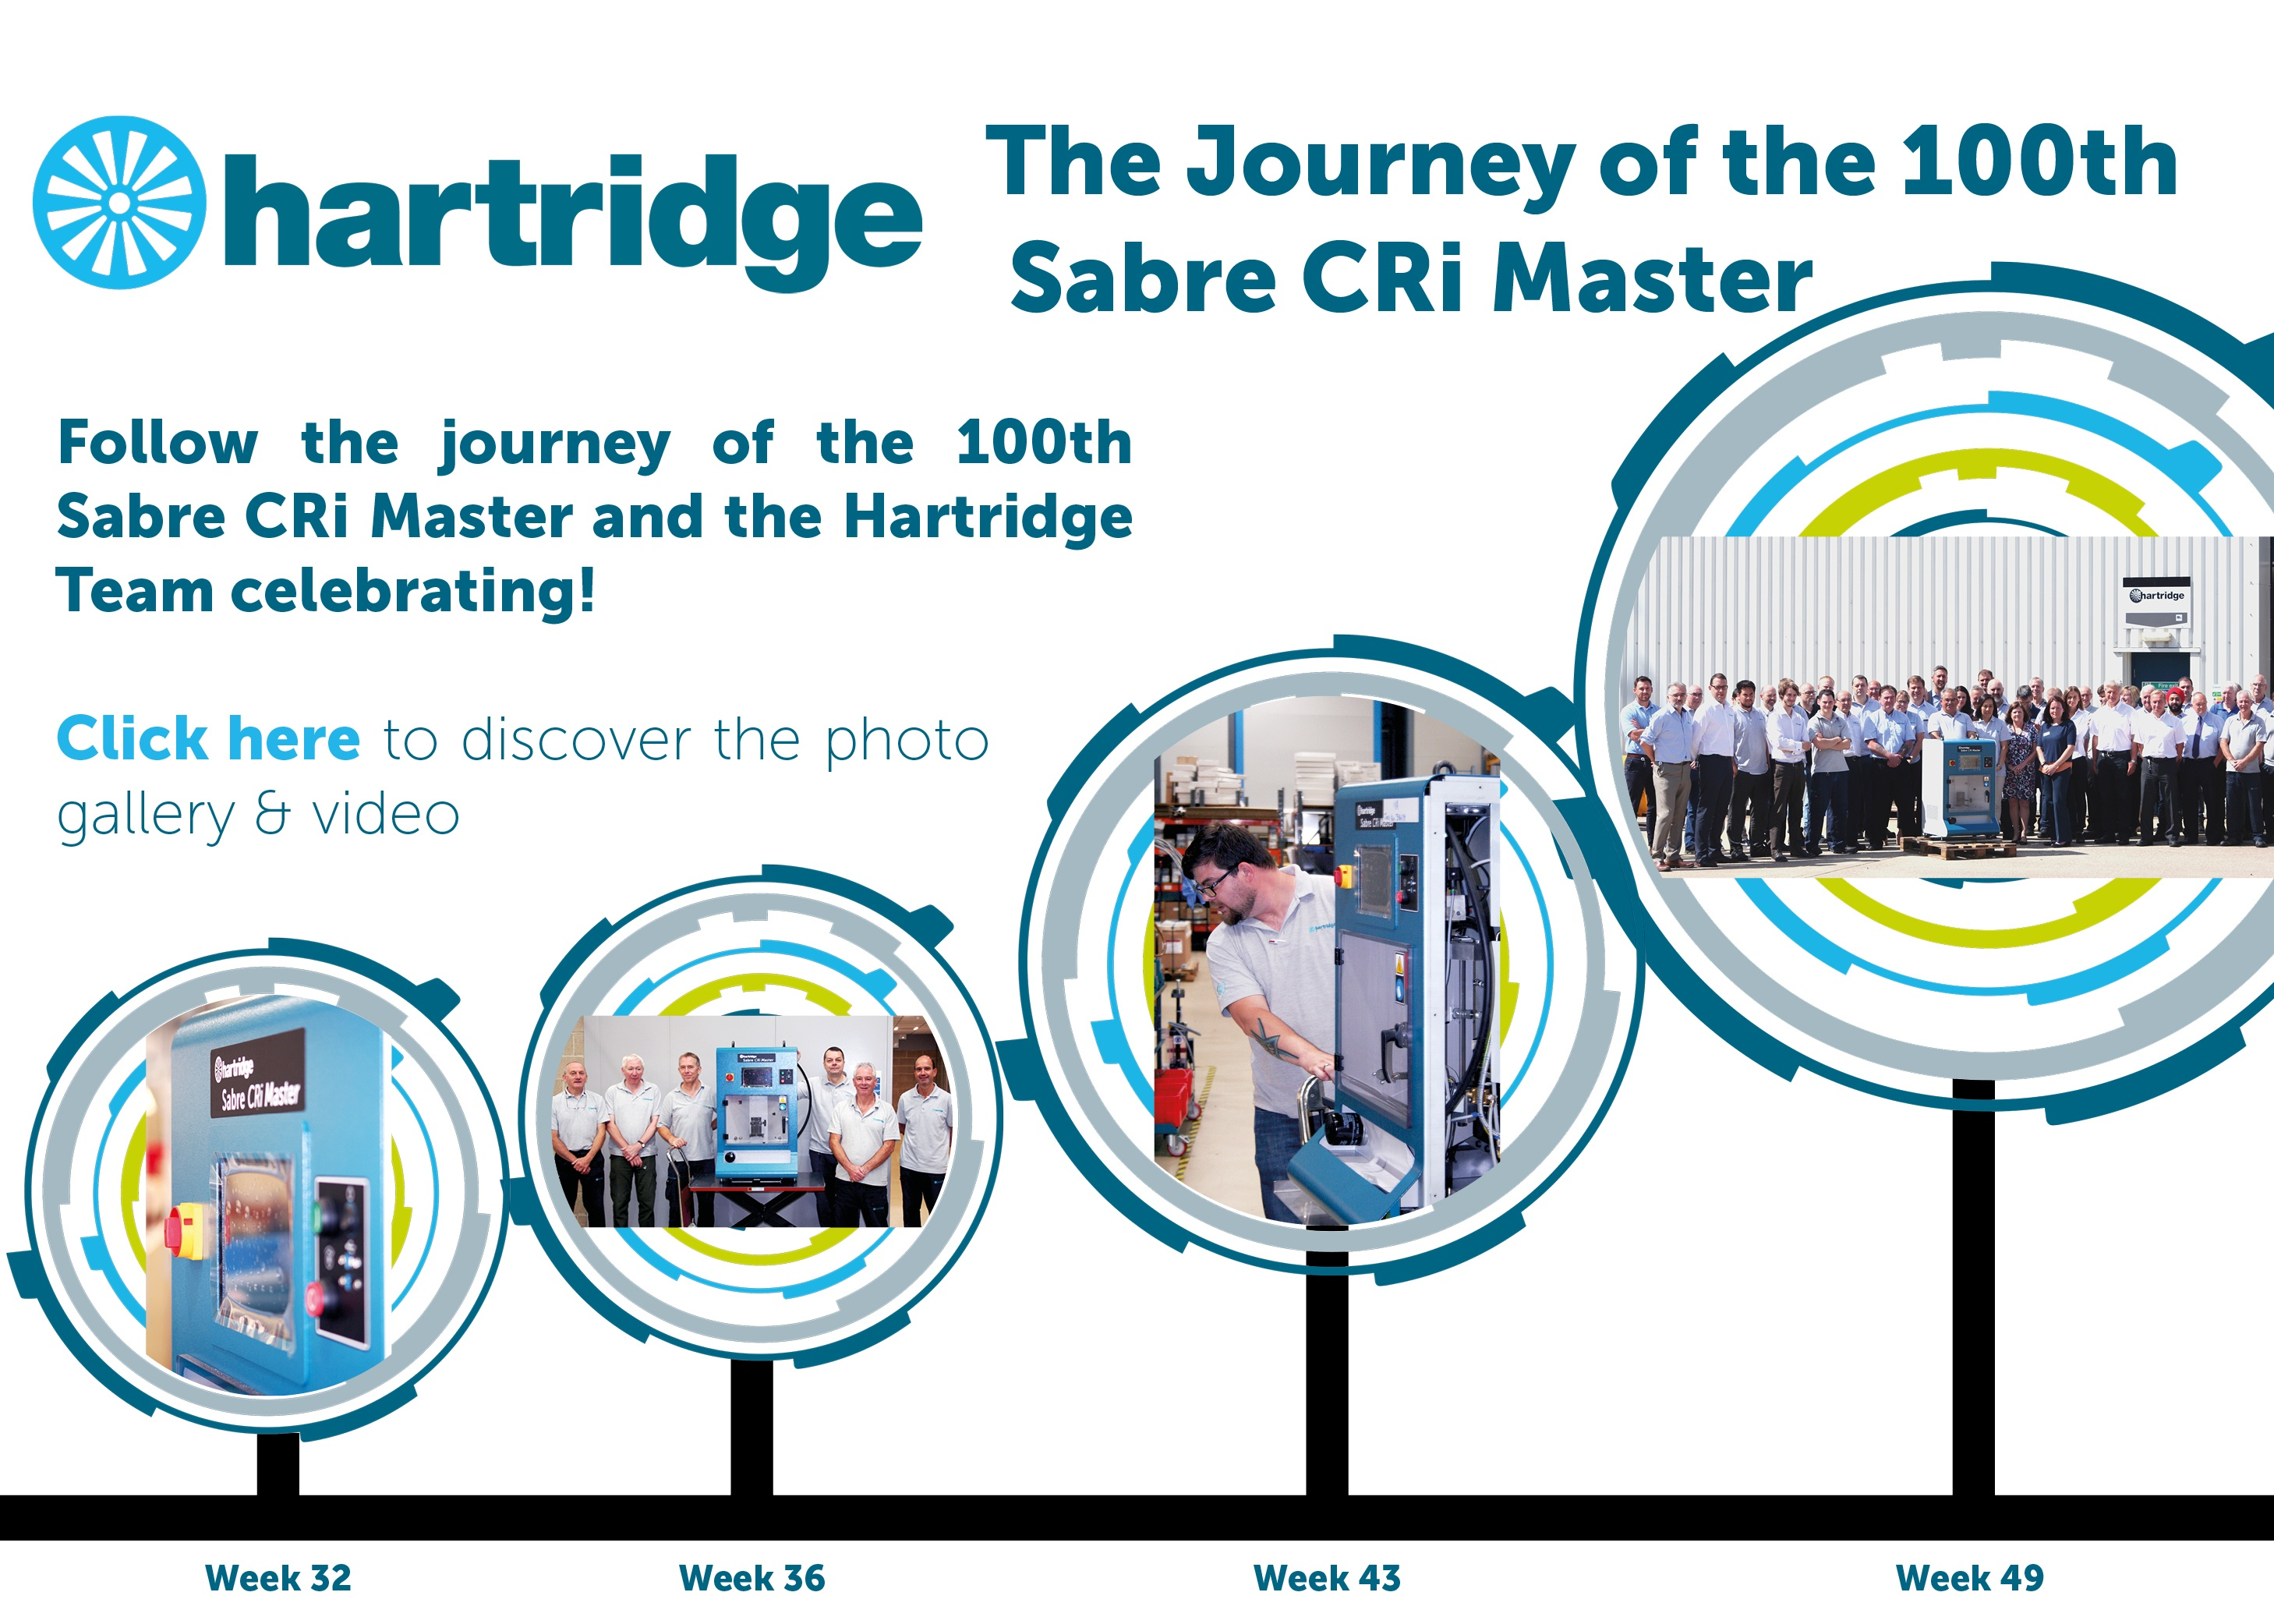 Go on a journey with the Sabre CRi Master